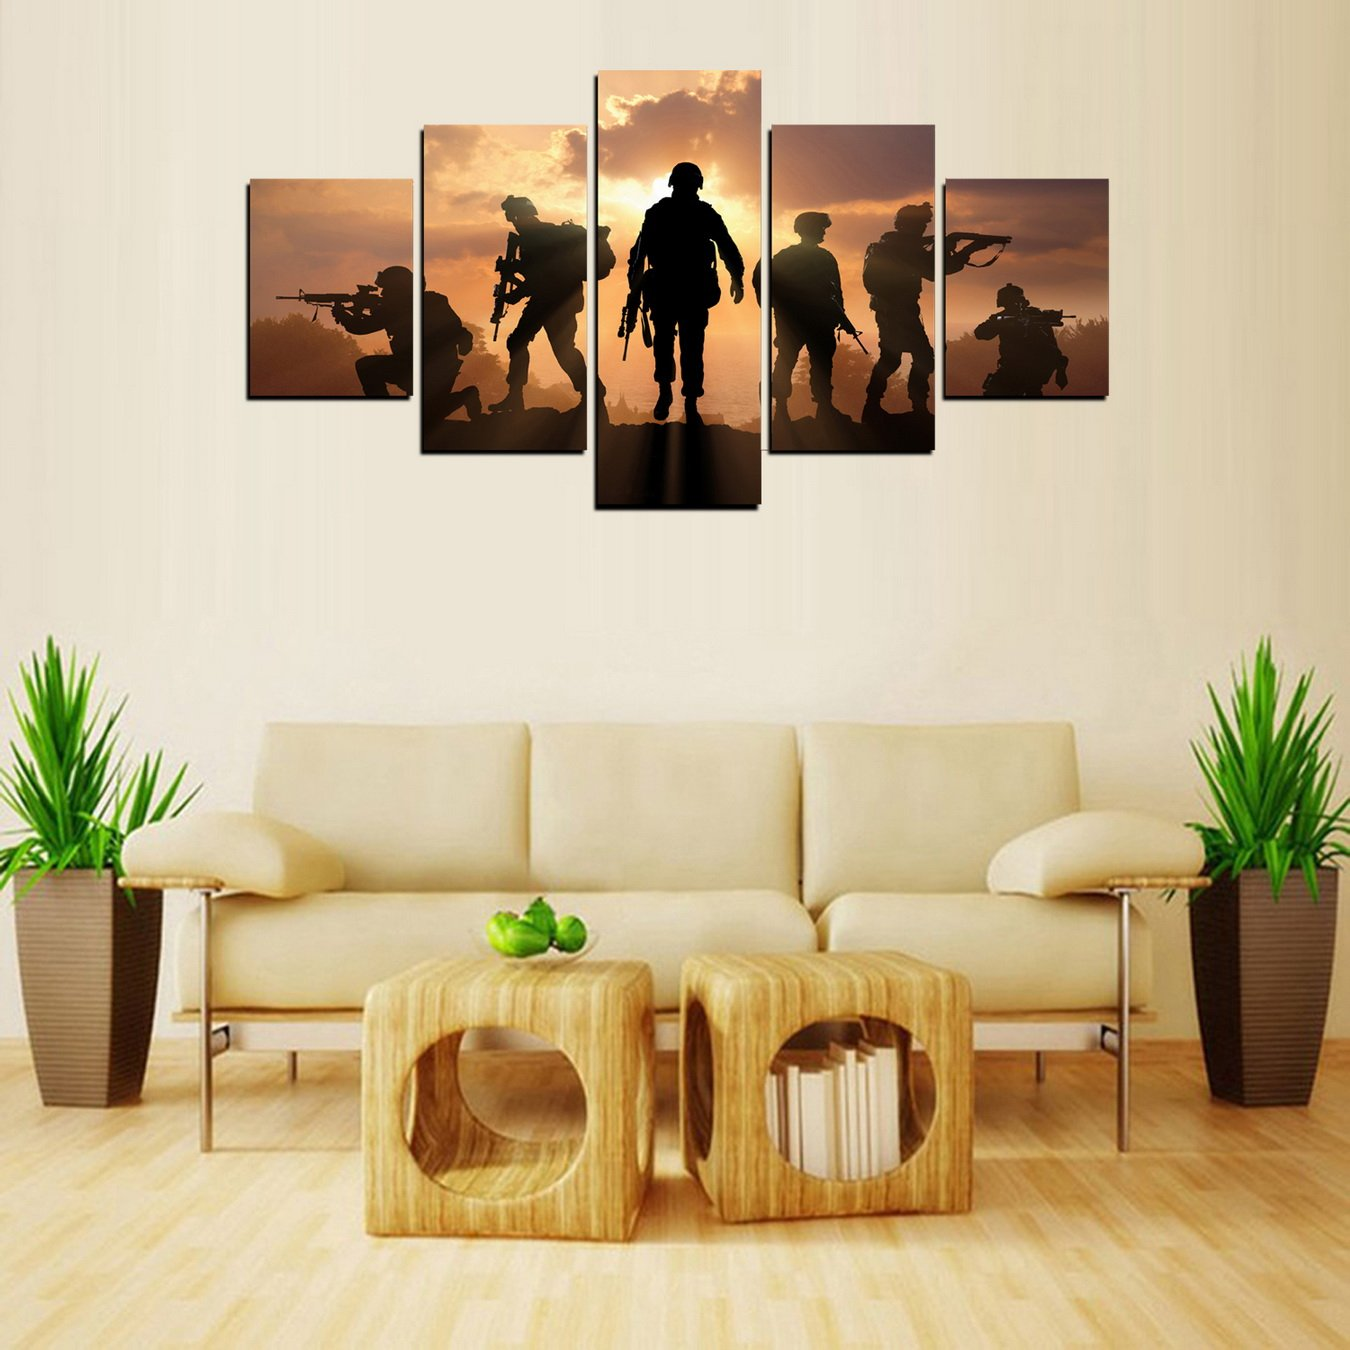 MailingArt Modern Home and Office Wall Decor 5 Panels Canvas Prints Six Military Soldier Silhouettes Photos to Prints Painting on Canvas 12x16inchx2 12x24inchx2 12x32inchx1